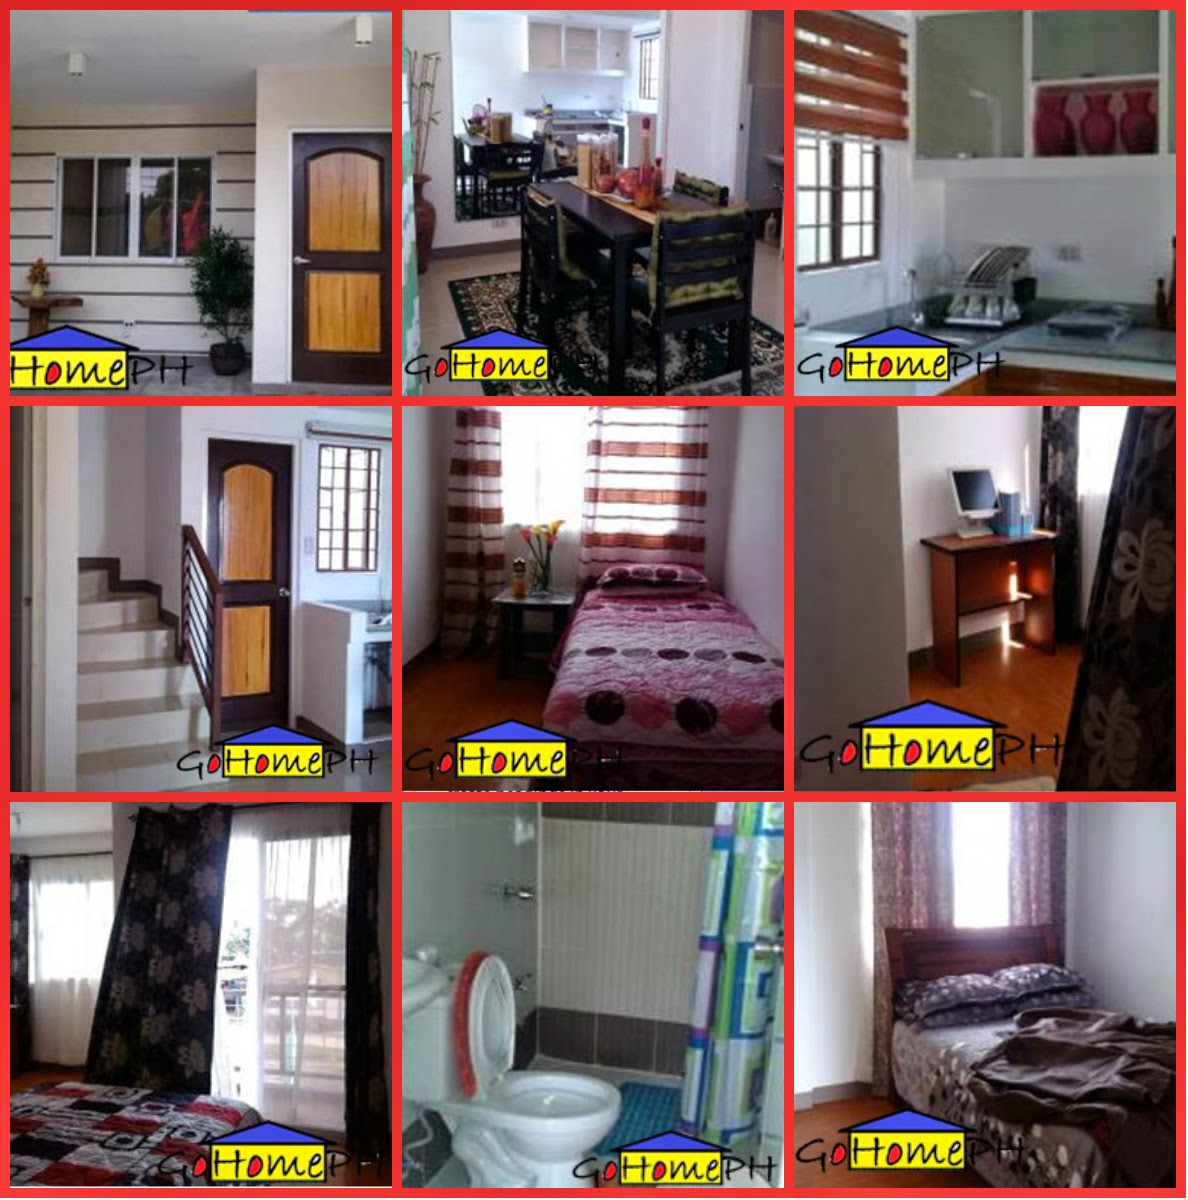 gohomeph: westernvill townhouses 3-storey house and lot in angono